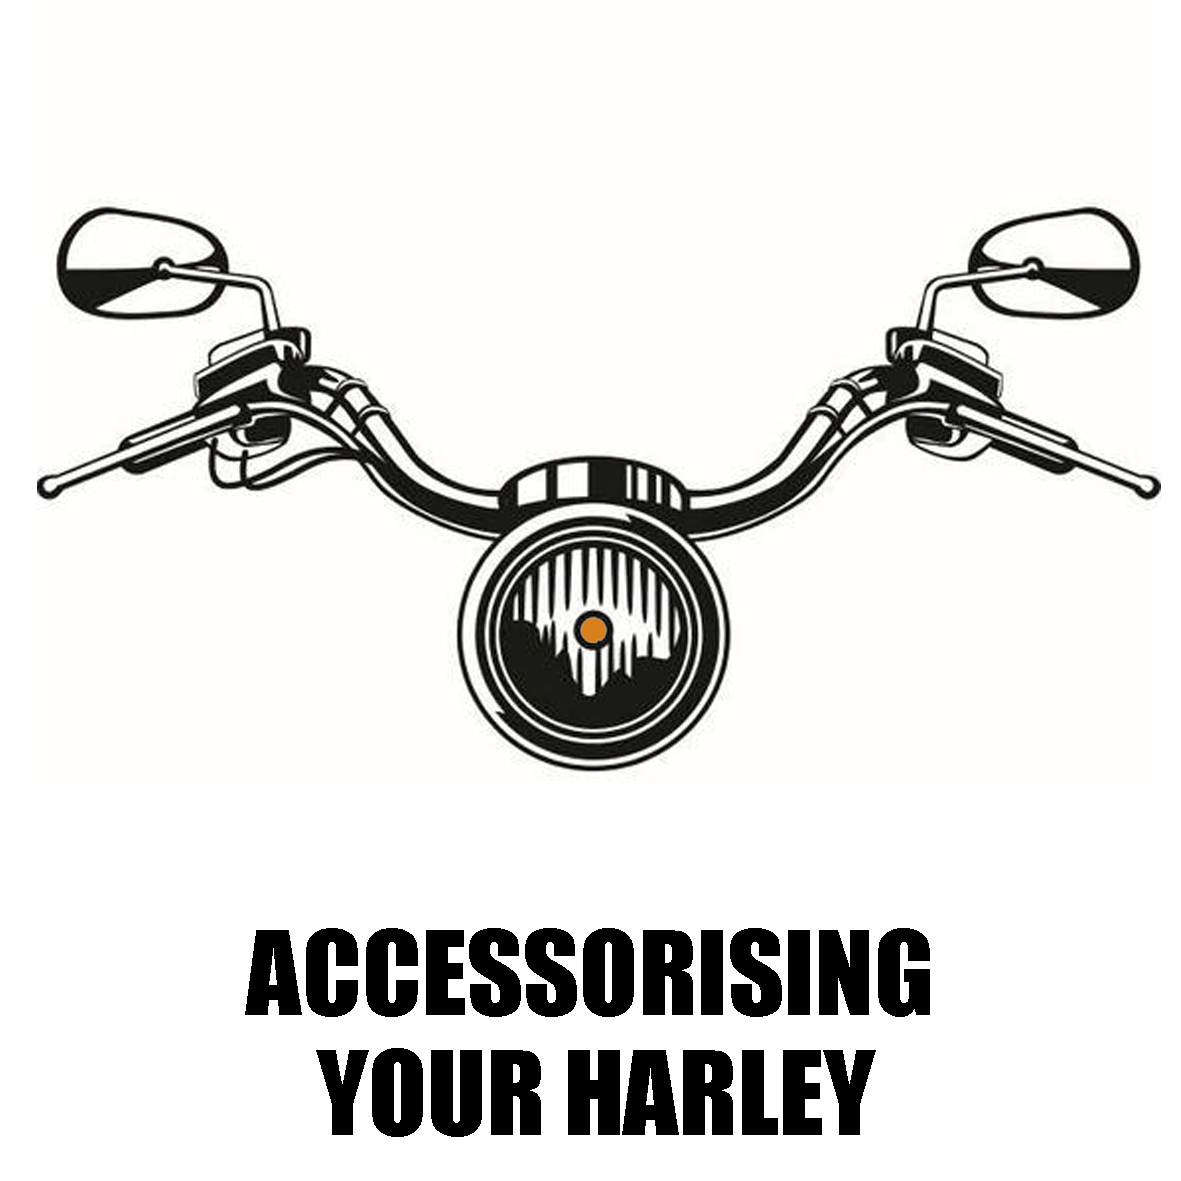 We stock Harley Davidson Accessories, Spares & Parts